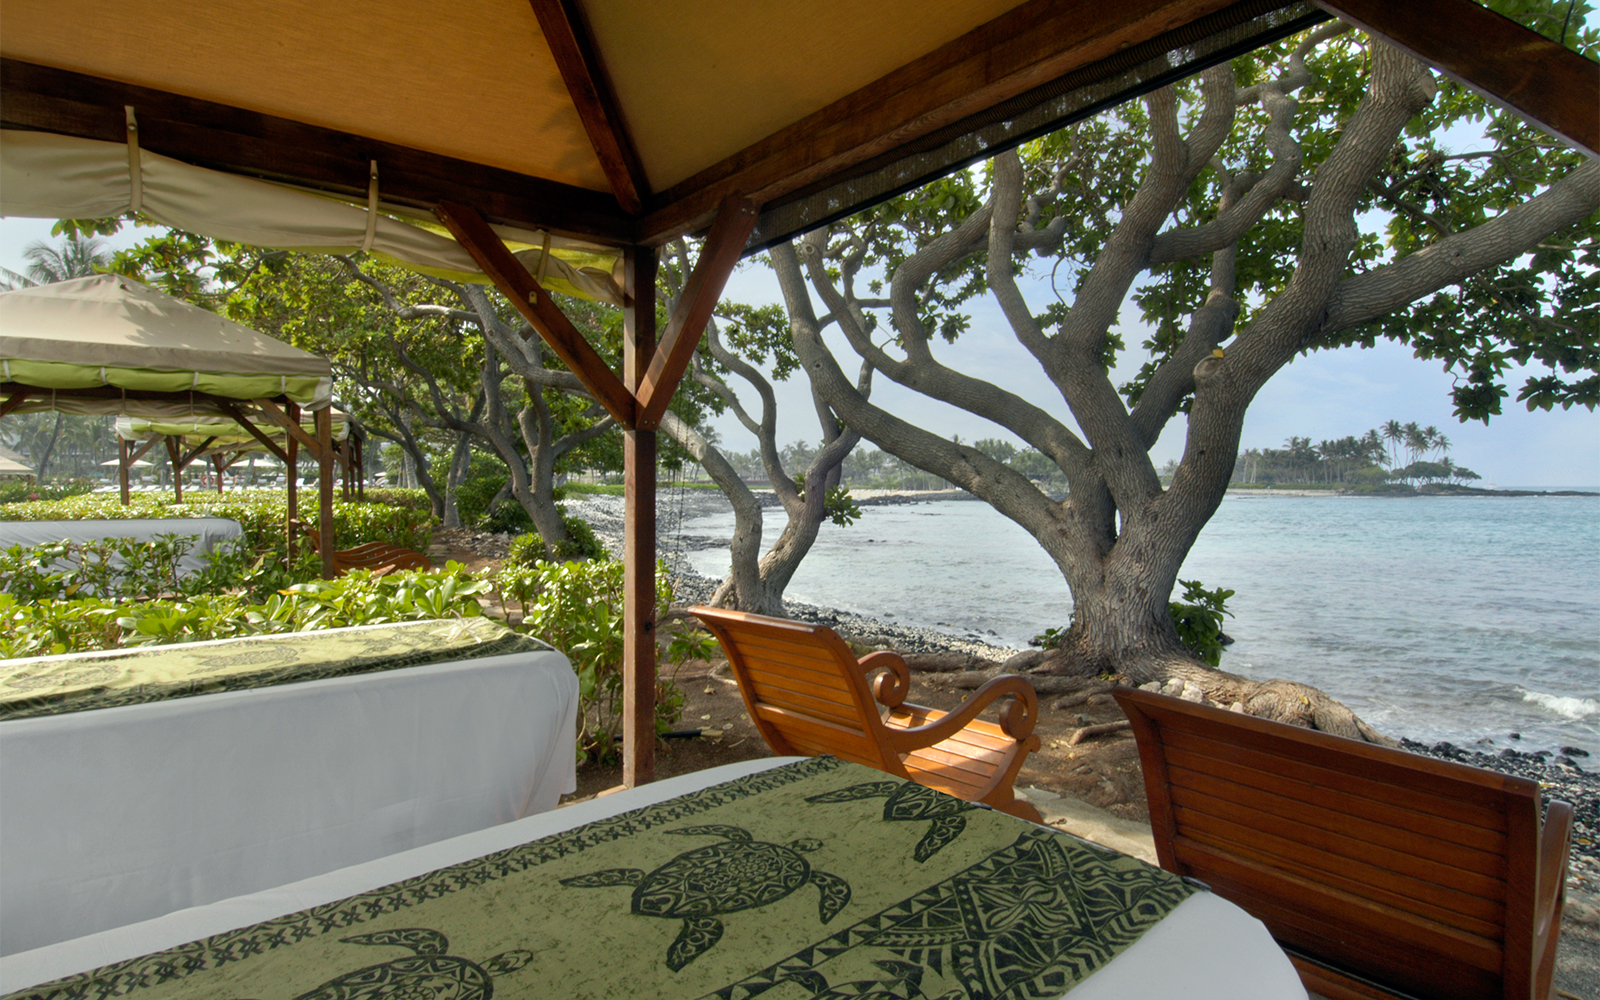 World's Best Family Beach Hotels: No. 16 The Fairmont Orchid: Big Island, Hawaii